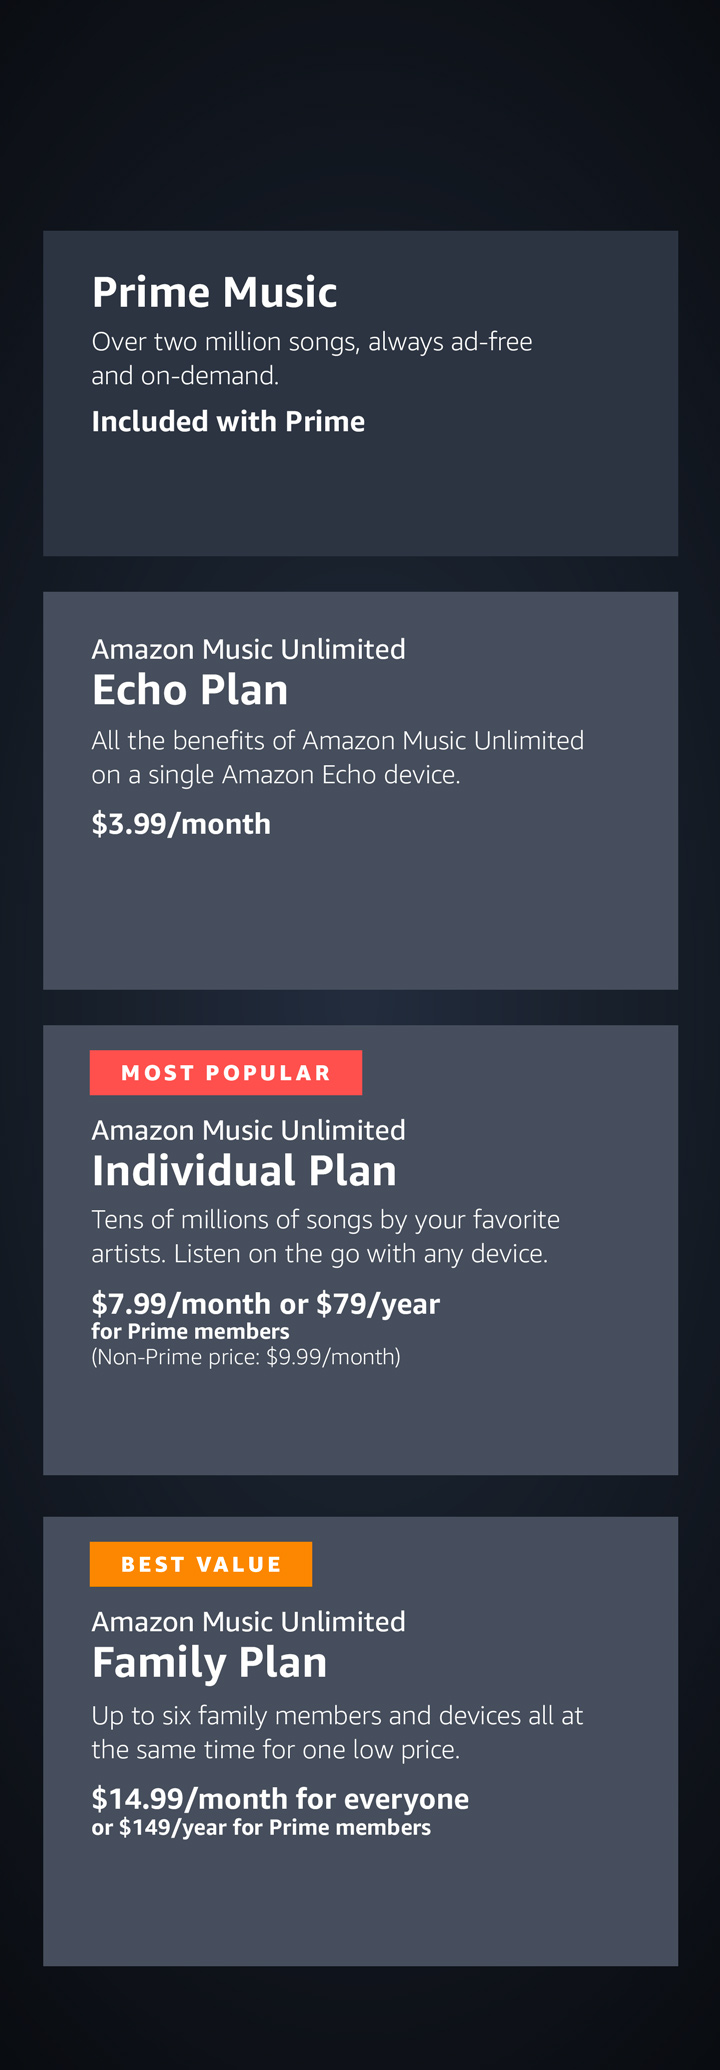 Choose the right Amazon Music plan for you. Prime Music - Over two million songs, always ad-free and on-demand. Free with Prime. Amazon Music Unlimited Echo plan - Tens of millions of songs on a single Echo, Dot, Tap, or show. Sign up only with Alexa. Just ask. $3.99 per month. Amazon Music Unlimited Individual plan - Tens of millions of songs on one account, on all your devices. $7.99 per month or $79 peryear for Prime members (Non-Prime price: $9.99/month). Amazon Music Unlimited Family plan - All the benefits of the individual plan for up to six family members. $14.99 per month or $149 per year.